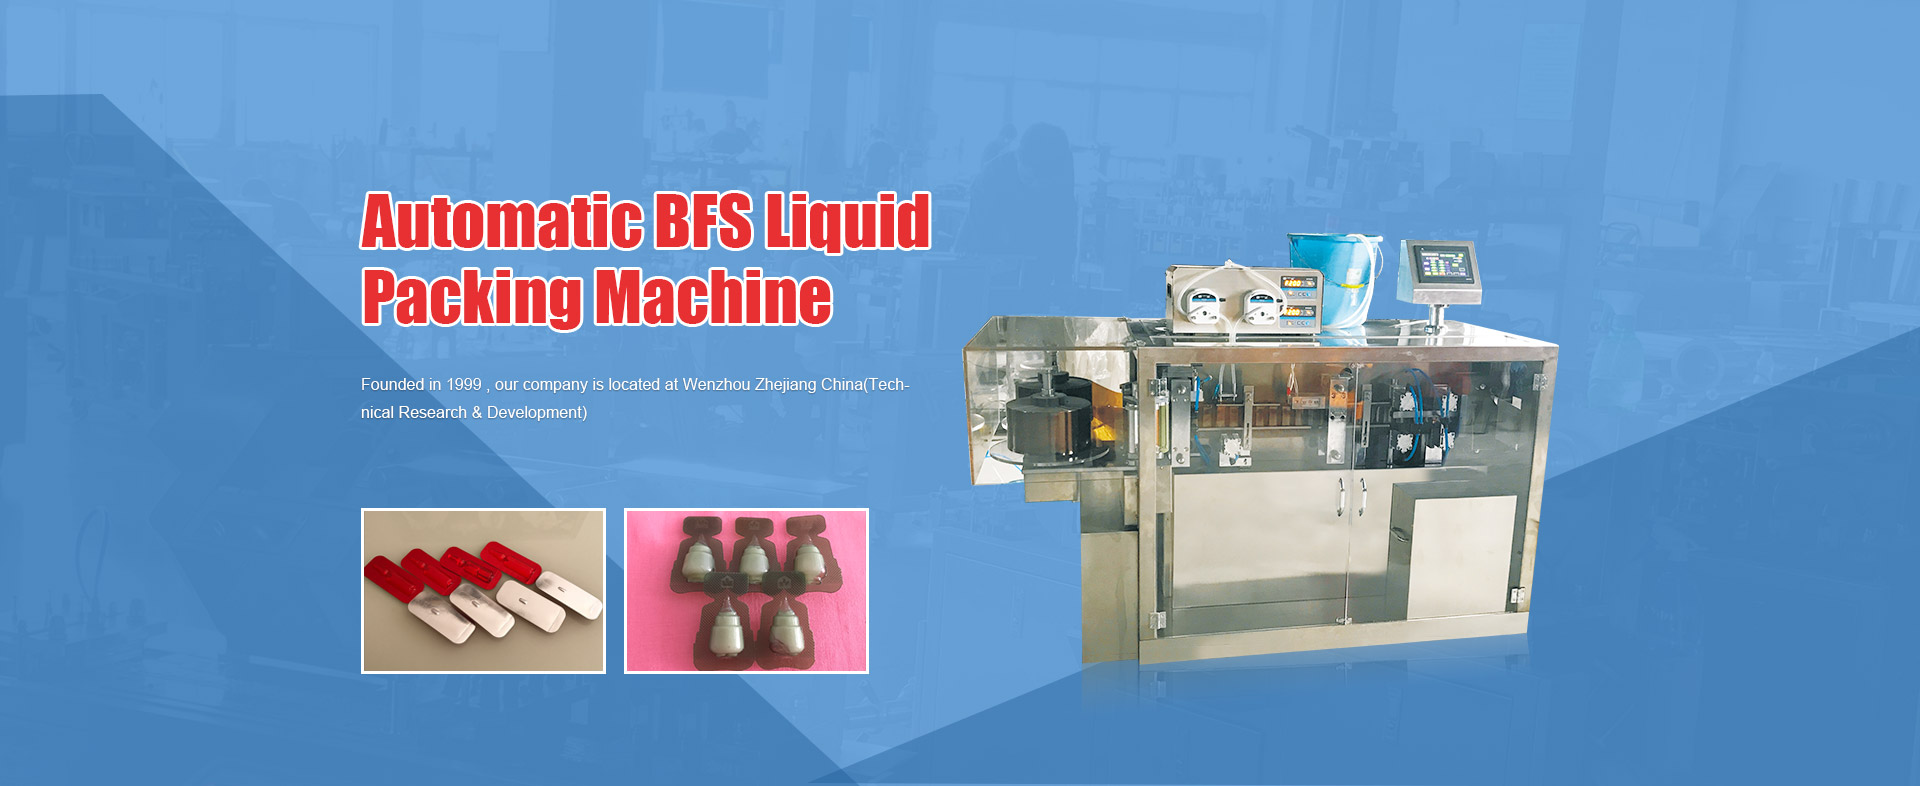 DGS-188 BFS Liquid Packing Machine